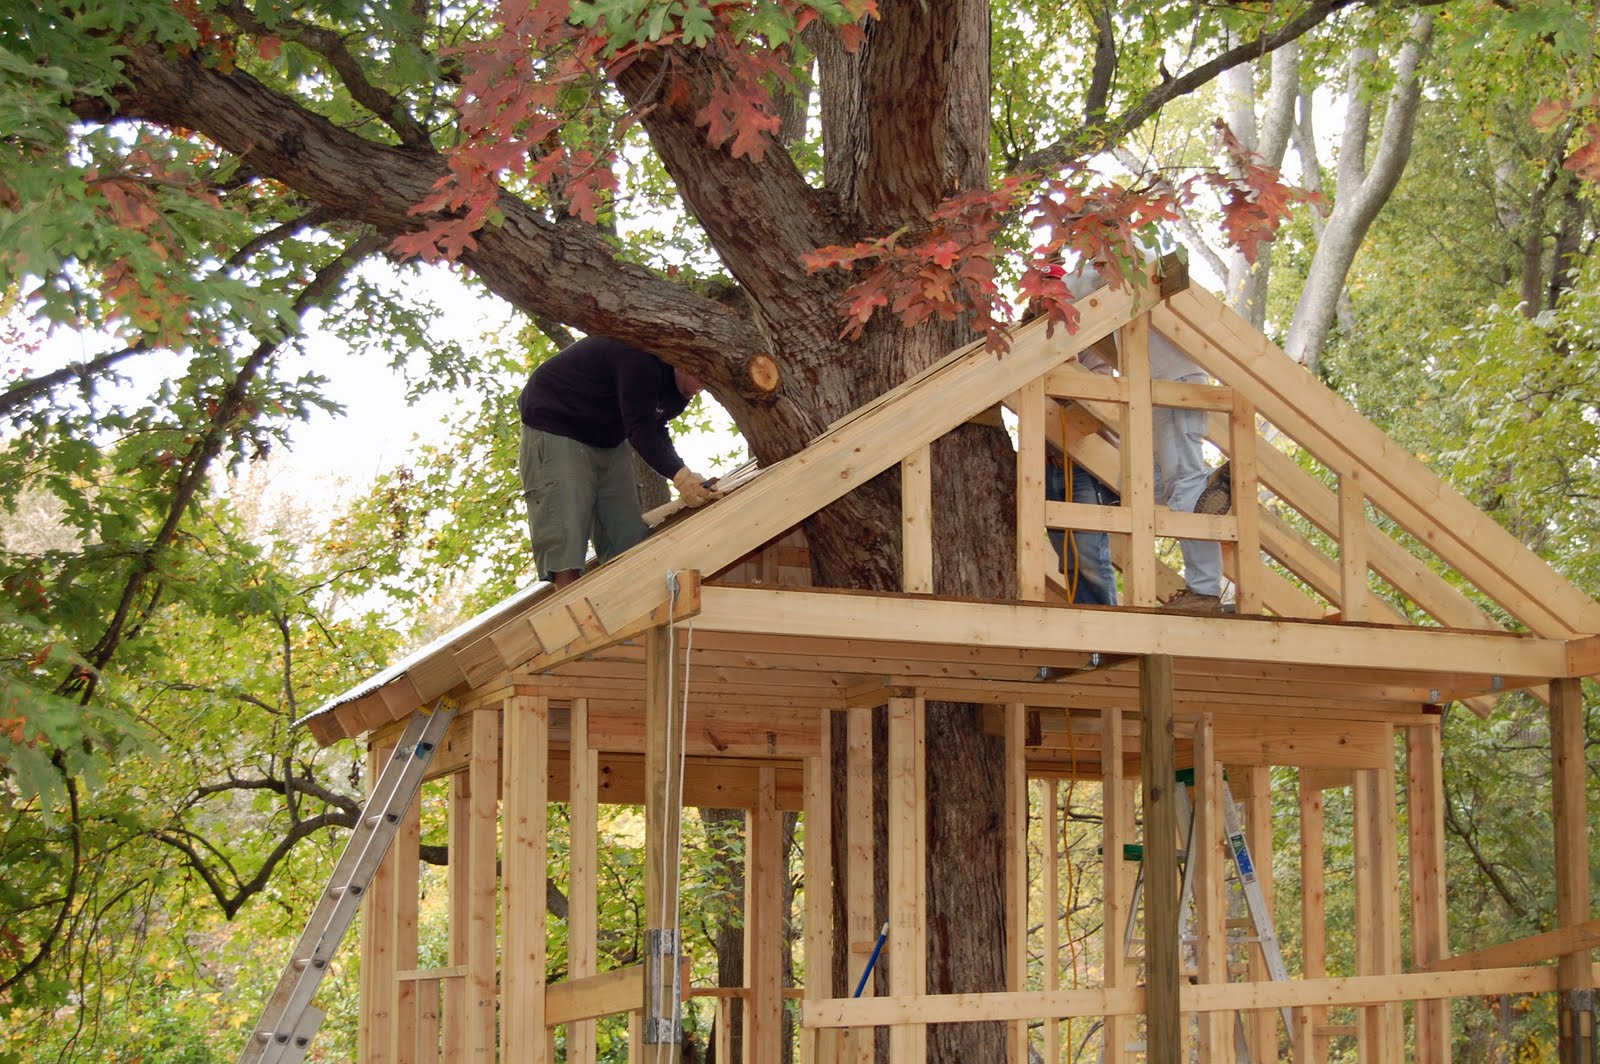 Pictures of Tree Houses and Play Houses From Around The ...